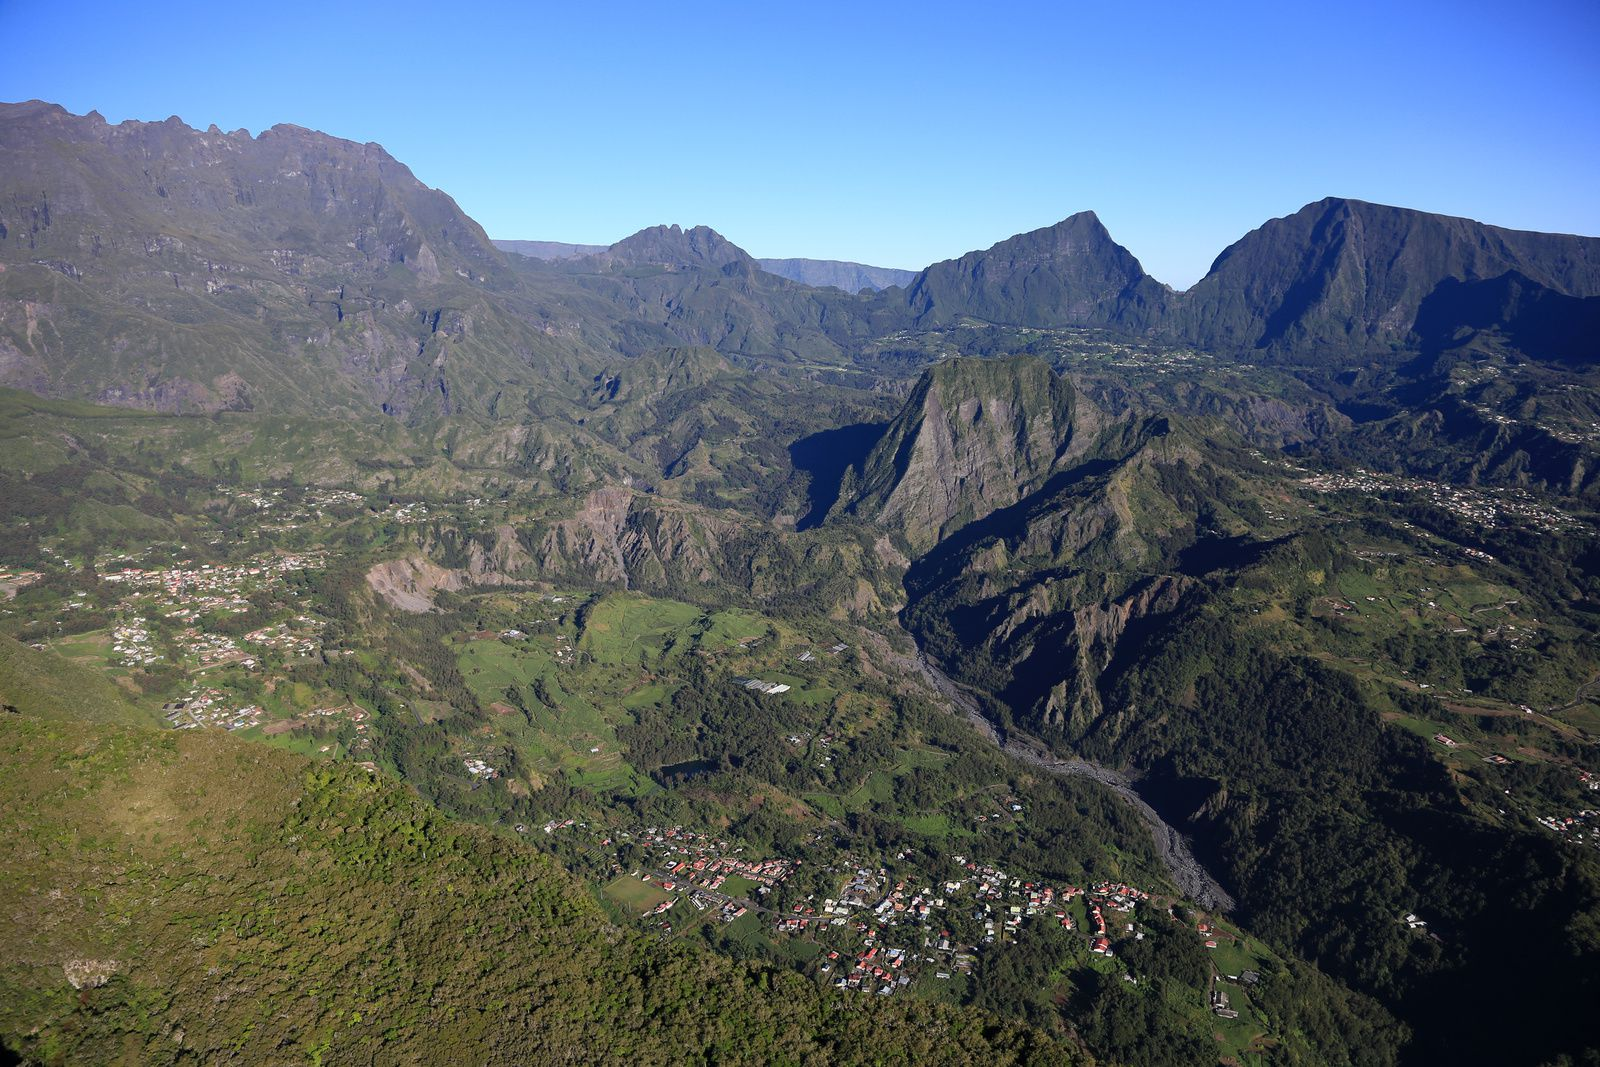 Reunion - circus of Salazie, with in the center, the Piton d'Enchaing - flight over the island in ULM / Planetair974 - photo © Bernard Duyck / june 2017